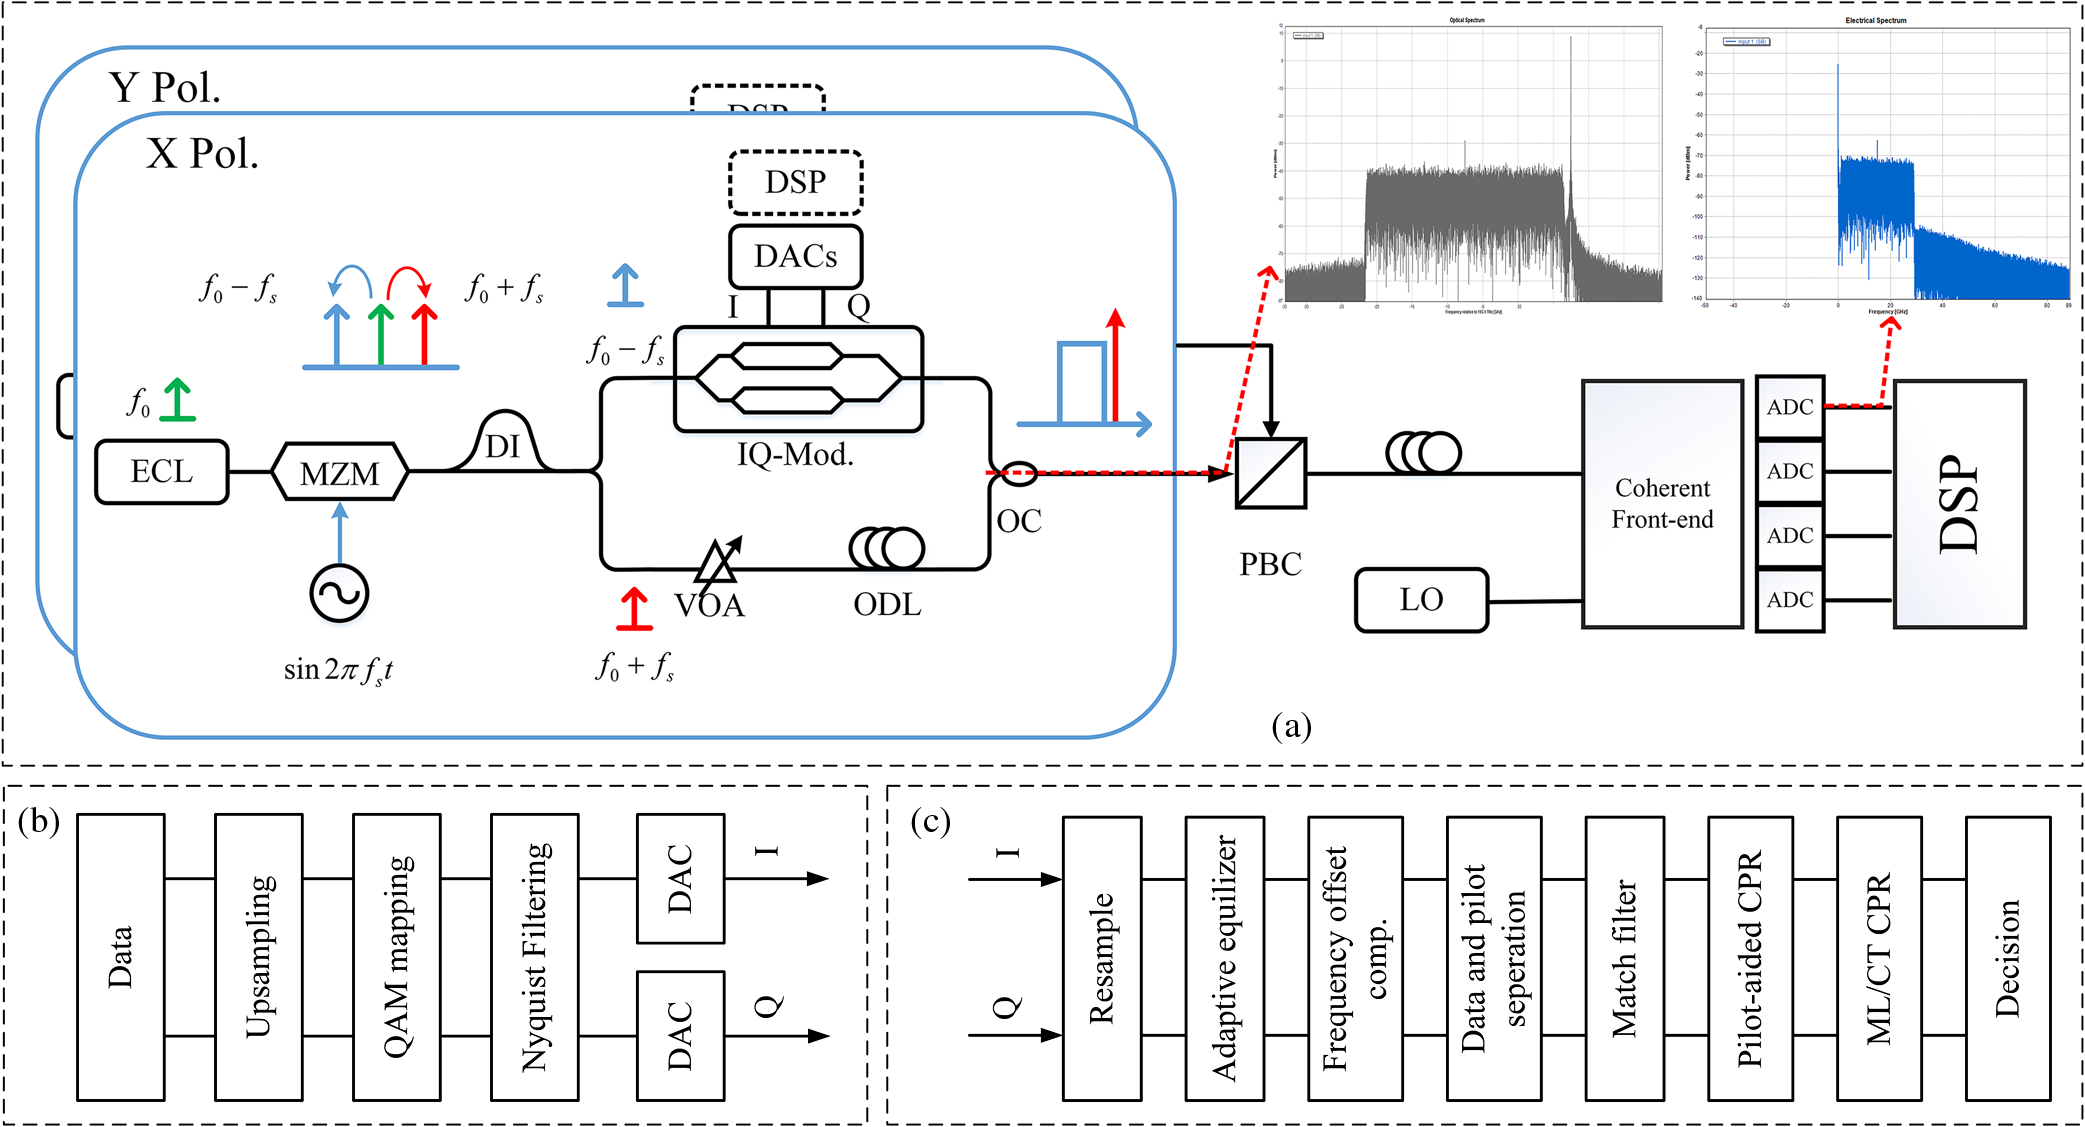 Optical Domain Scheme Of Pilot Tone Aided Carrier Phase Recovery For M Ary Psk Transmitter Block Diagram With Spectrum The Transmitted And Received Signal B Digital Processing Dsp At C Based Receiver Configuration